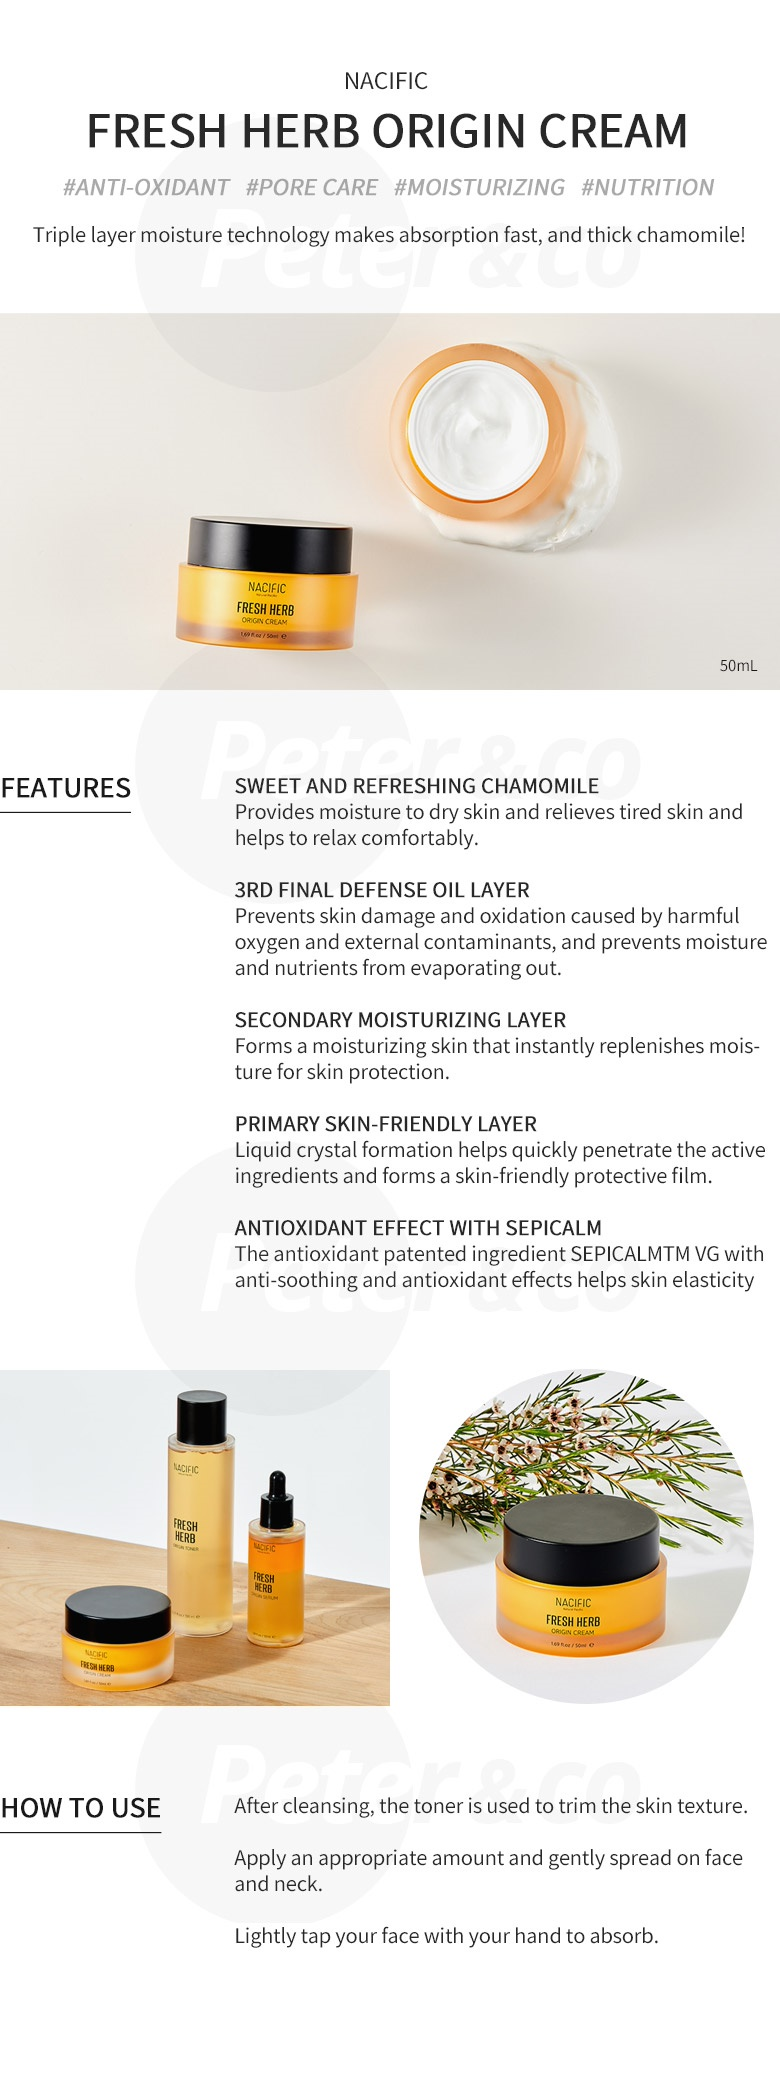 Every Need Want Day Nacific Natural Pacific Fresh Herb Origin Serum 50ml Renewal Essence Toner Cream Cleansing Foam Oil